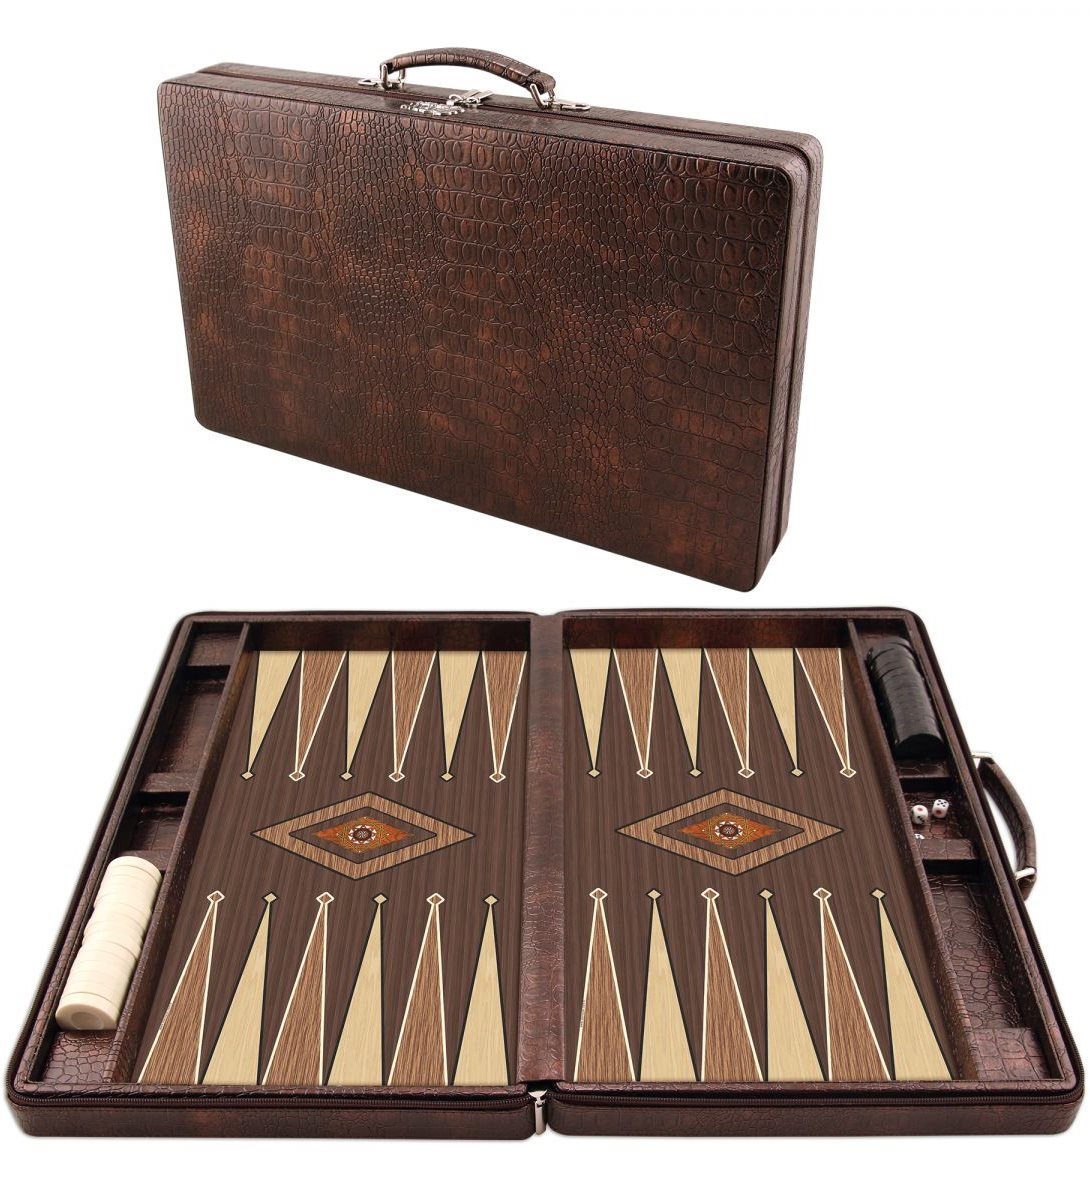 Board game backgammon set leisure wooden outdoor toys gift hand travel games chessboard large size bag leather orginal large mahjong portable wooden boxes set table game mah jong travelling board game indoor antique leather box english manual